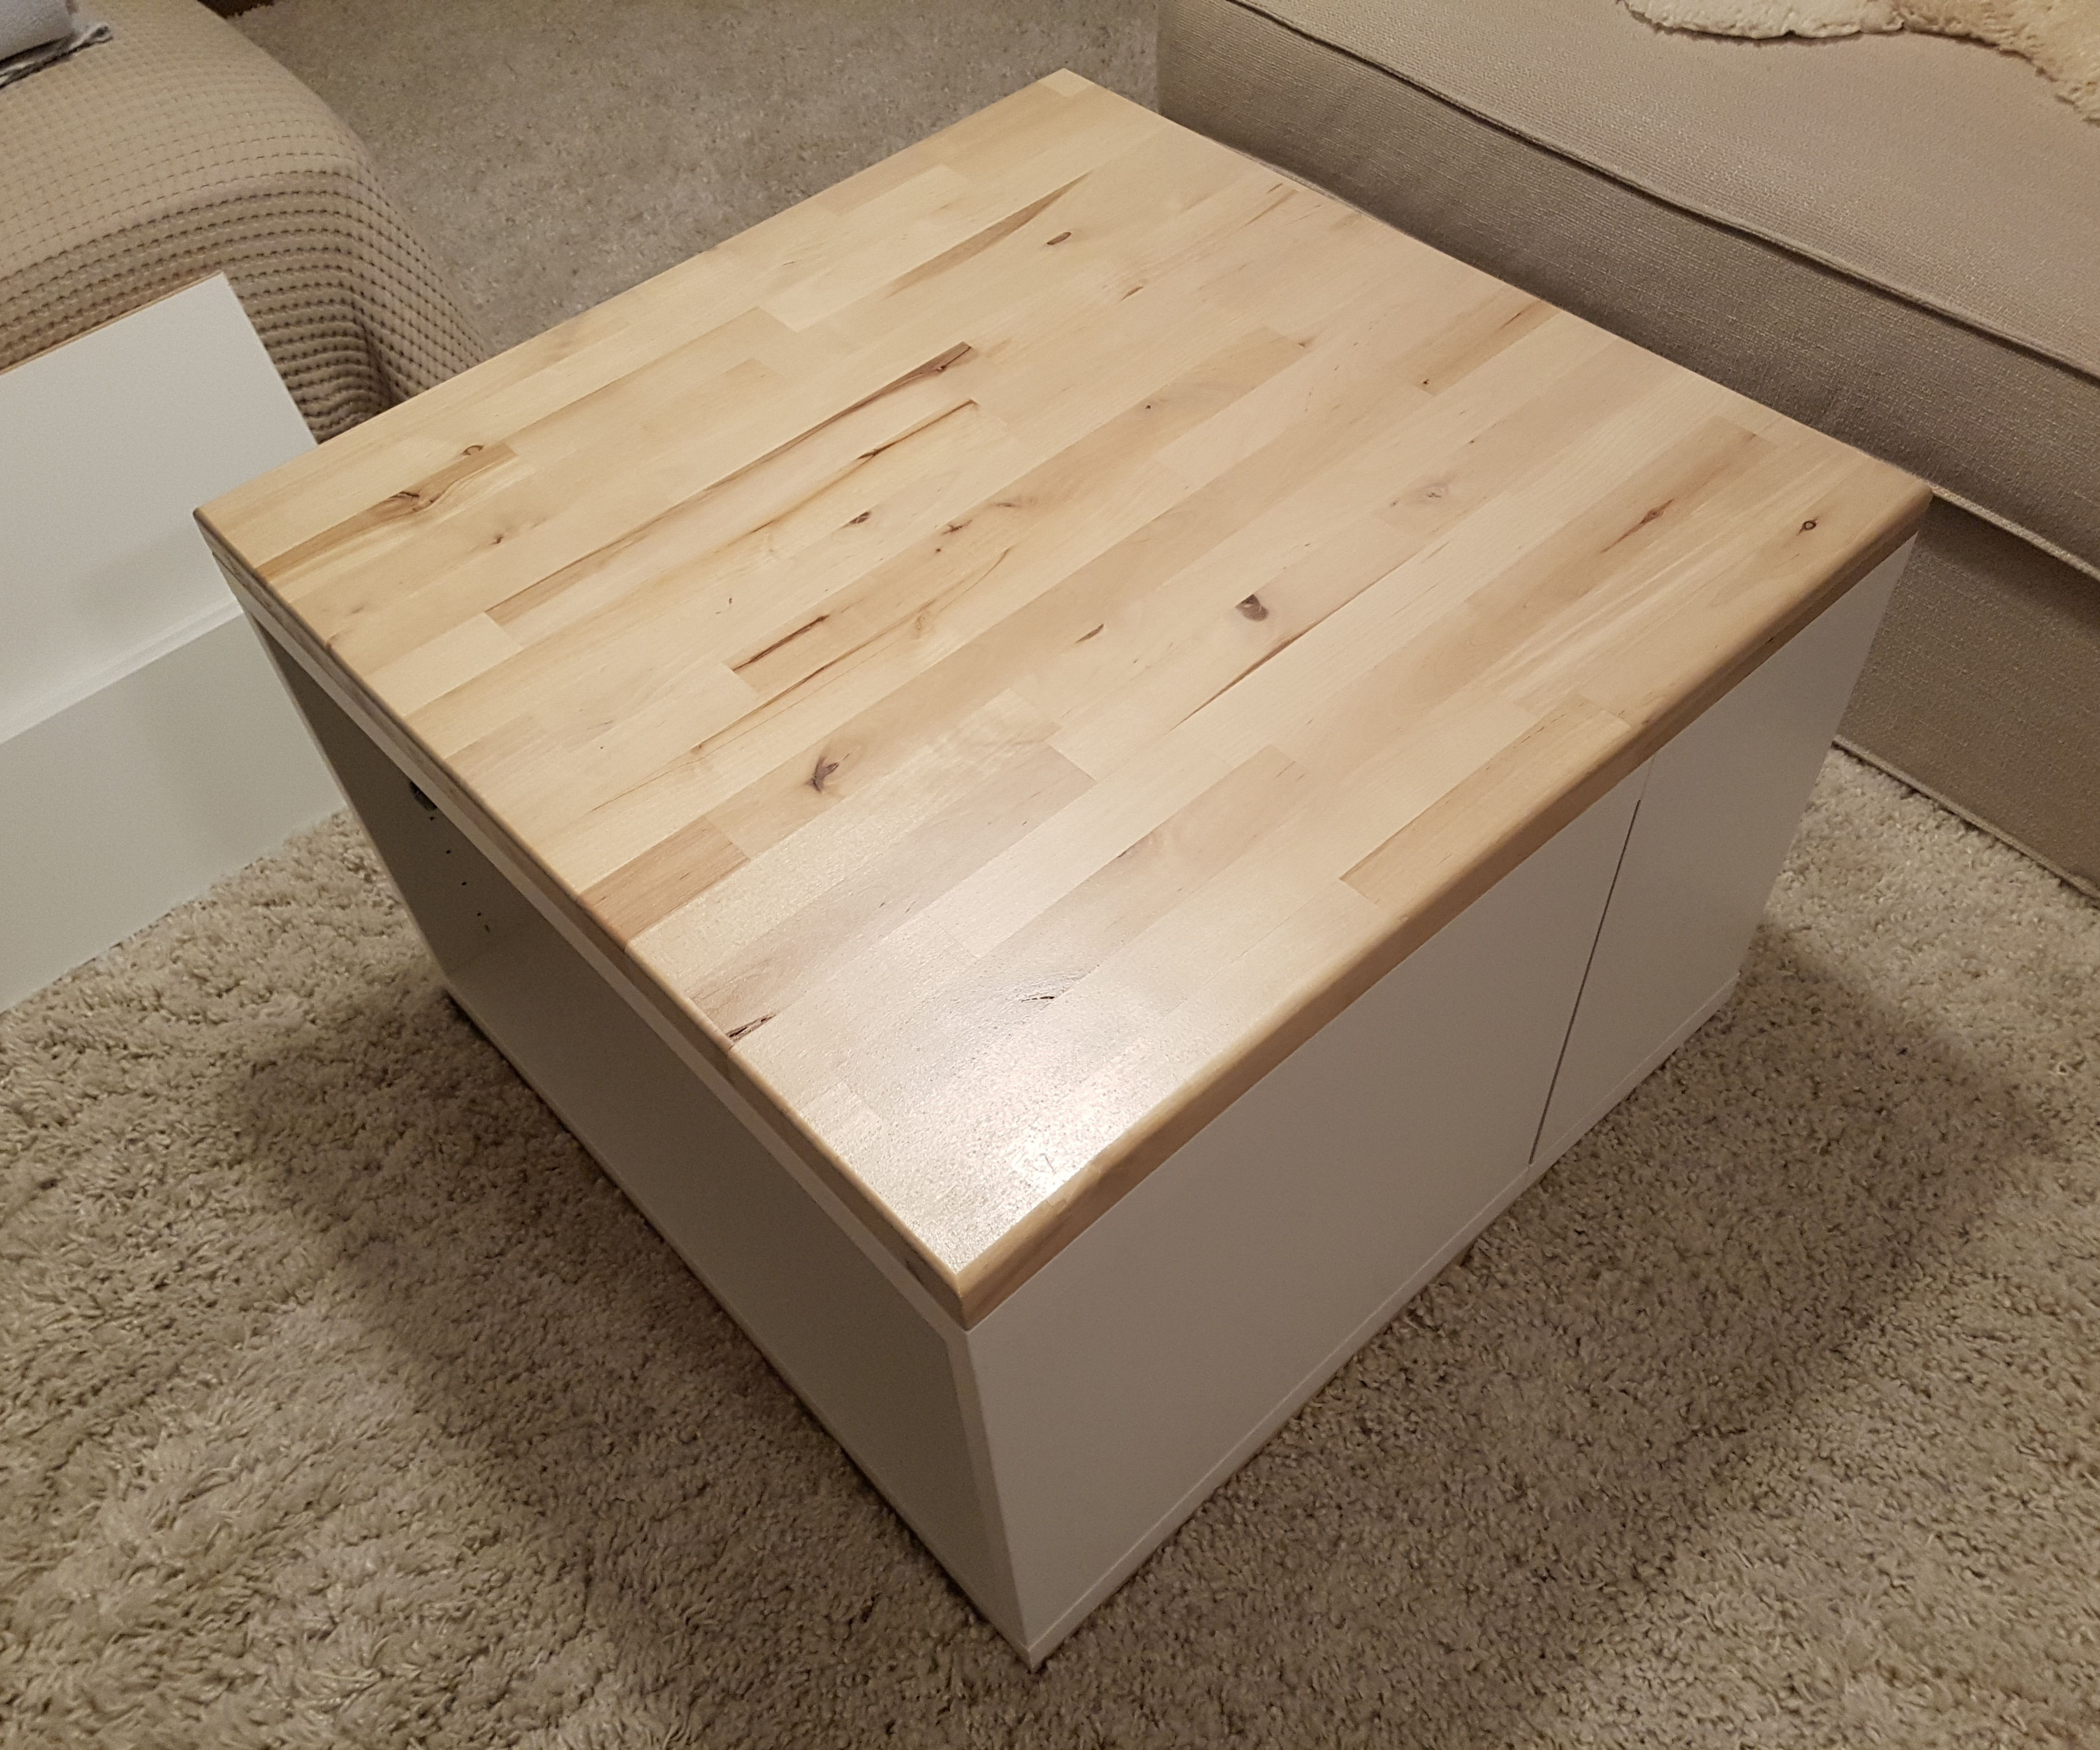 Ikea Besta Couch Table Shelf Hack 4 Steps With Pictures